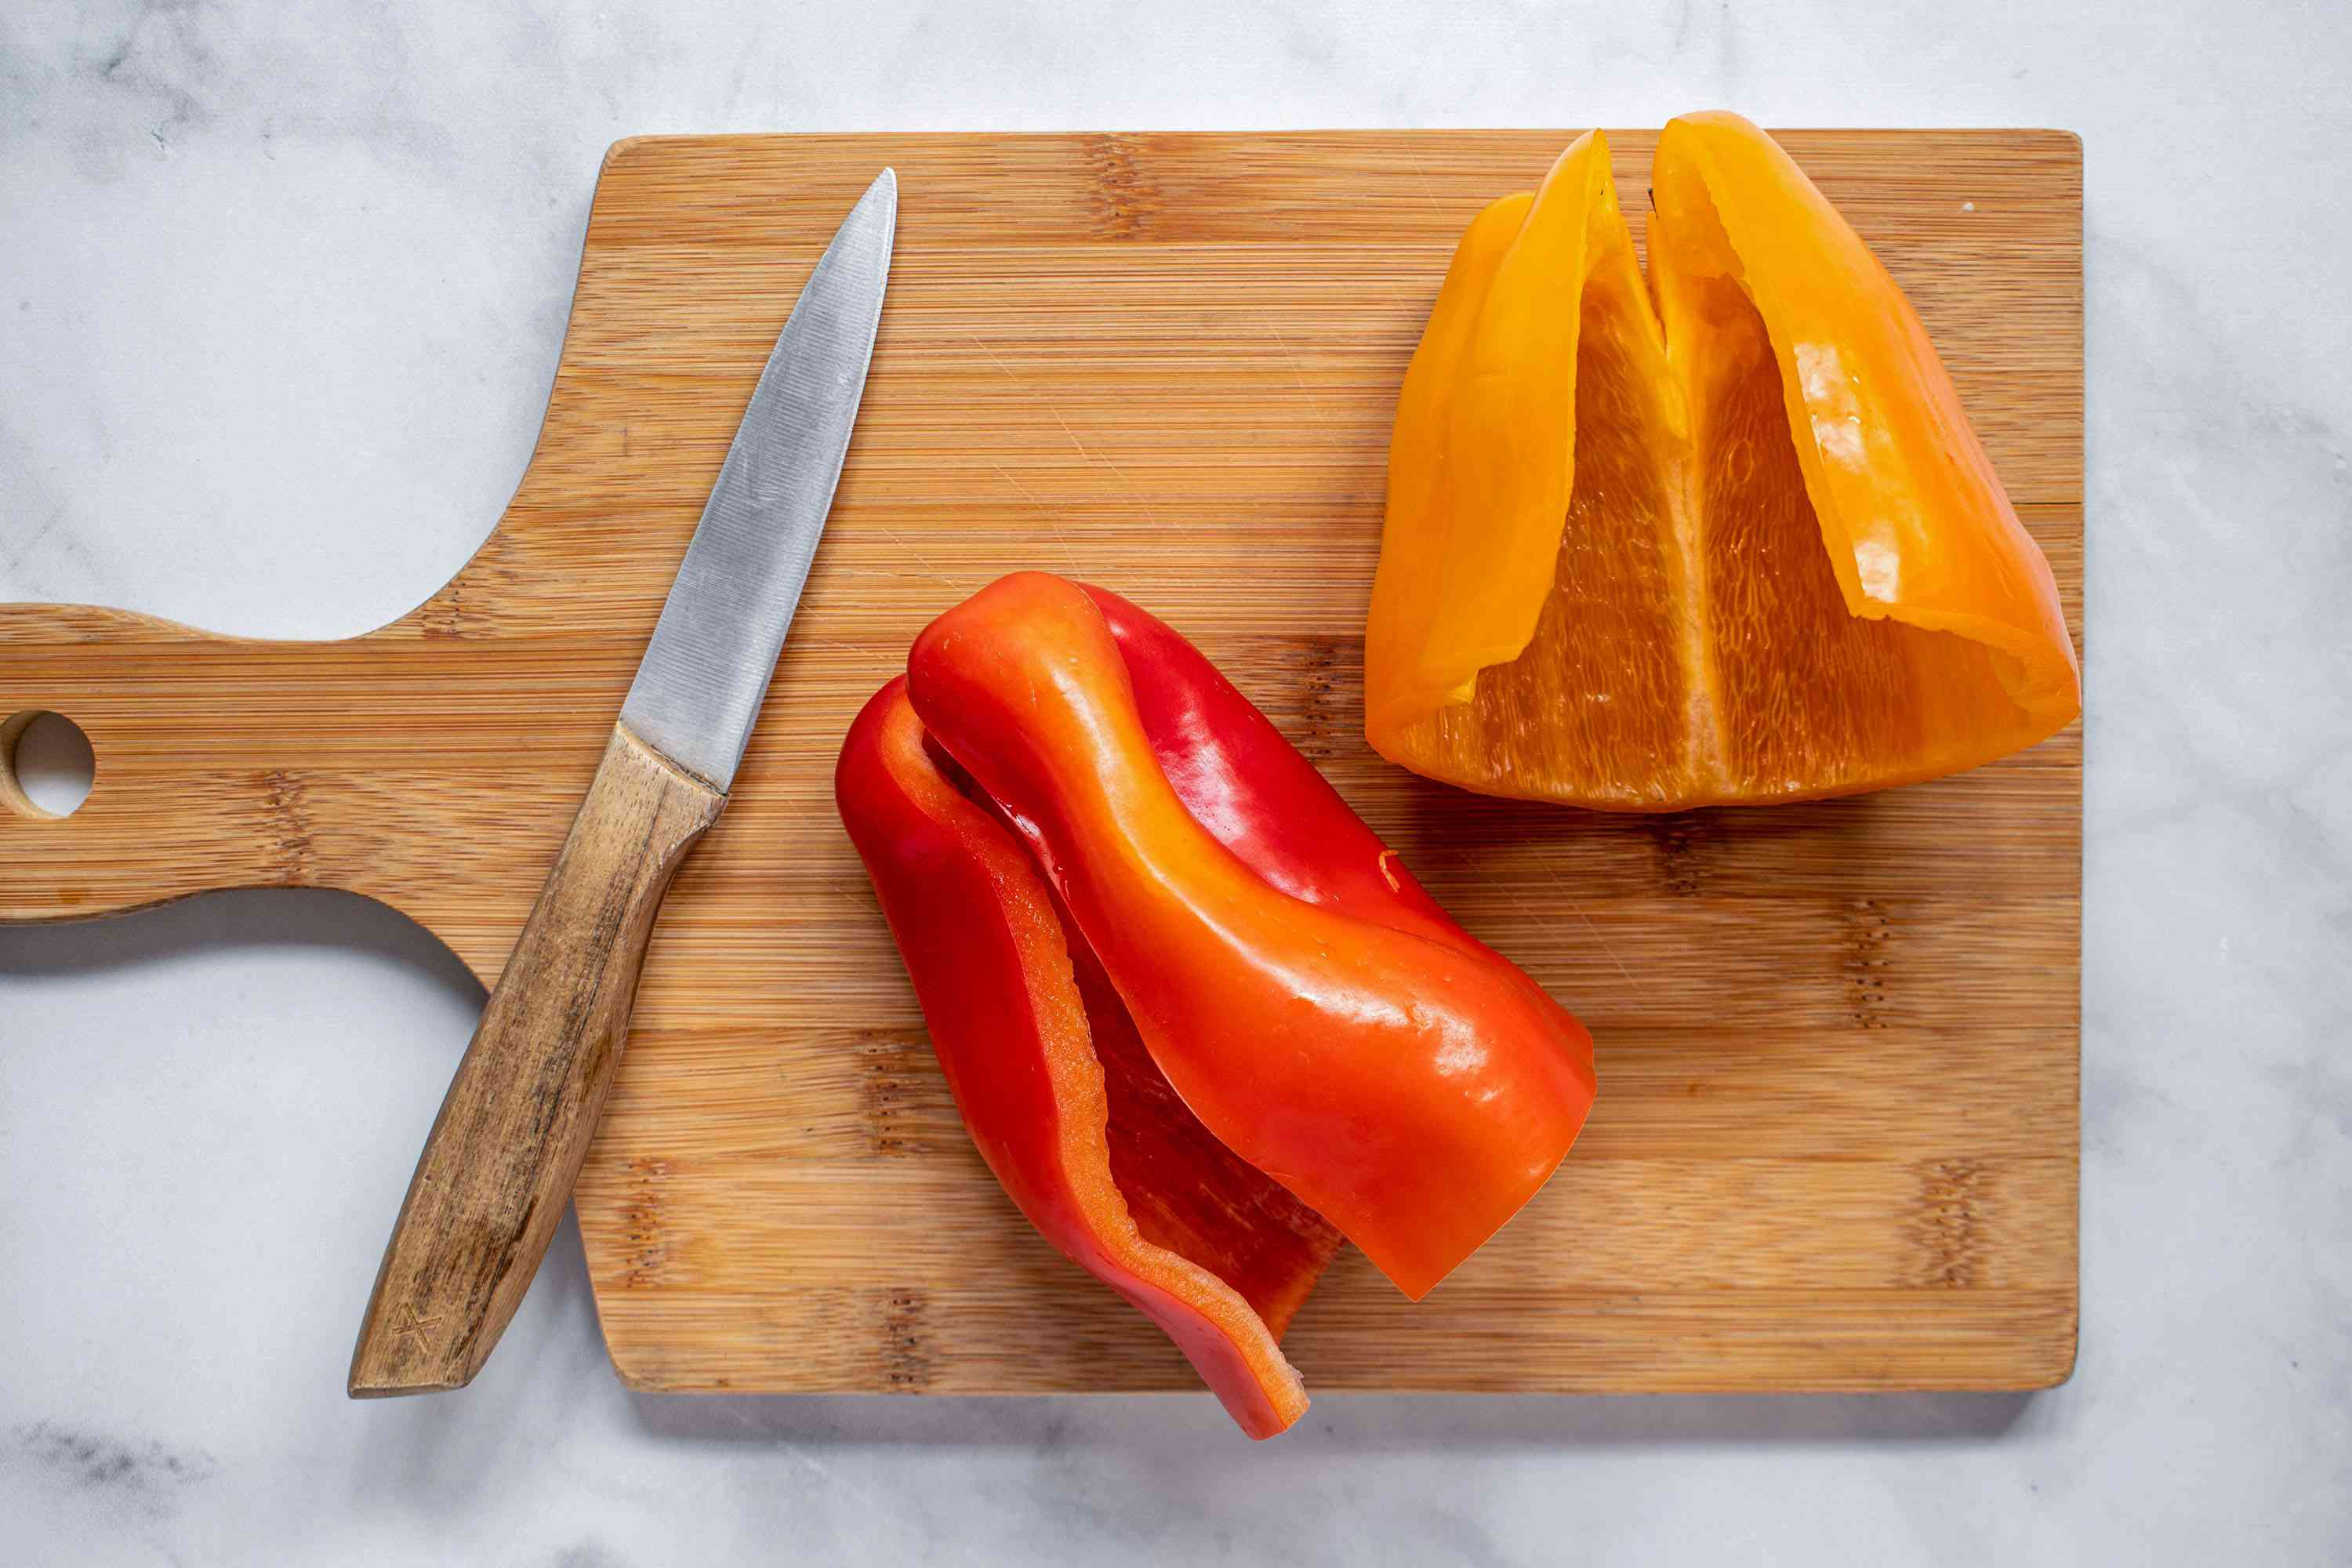 Core and seed the bell peppers